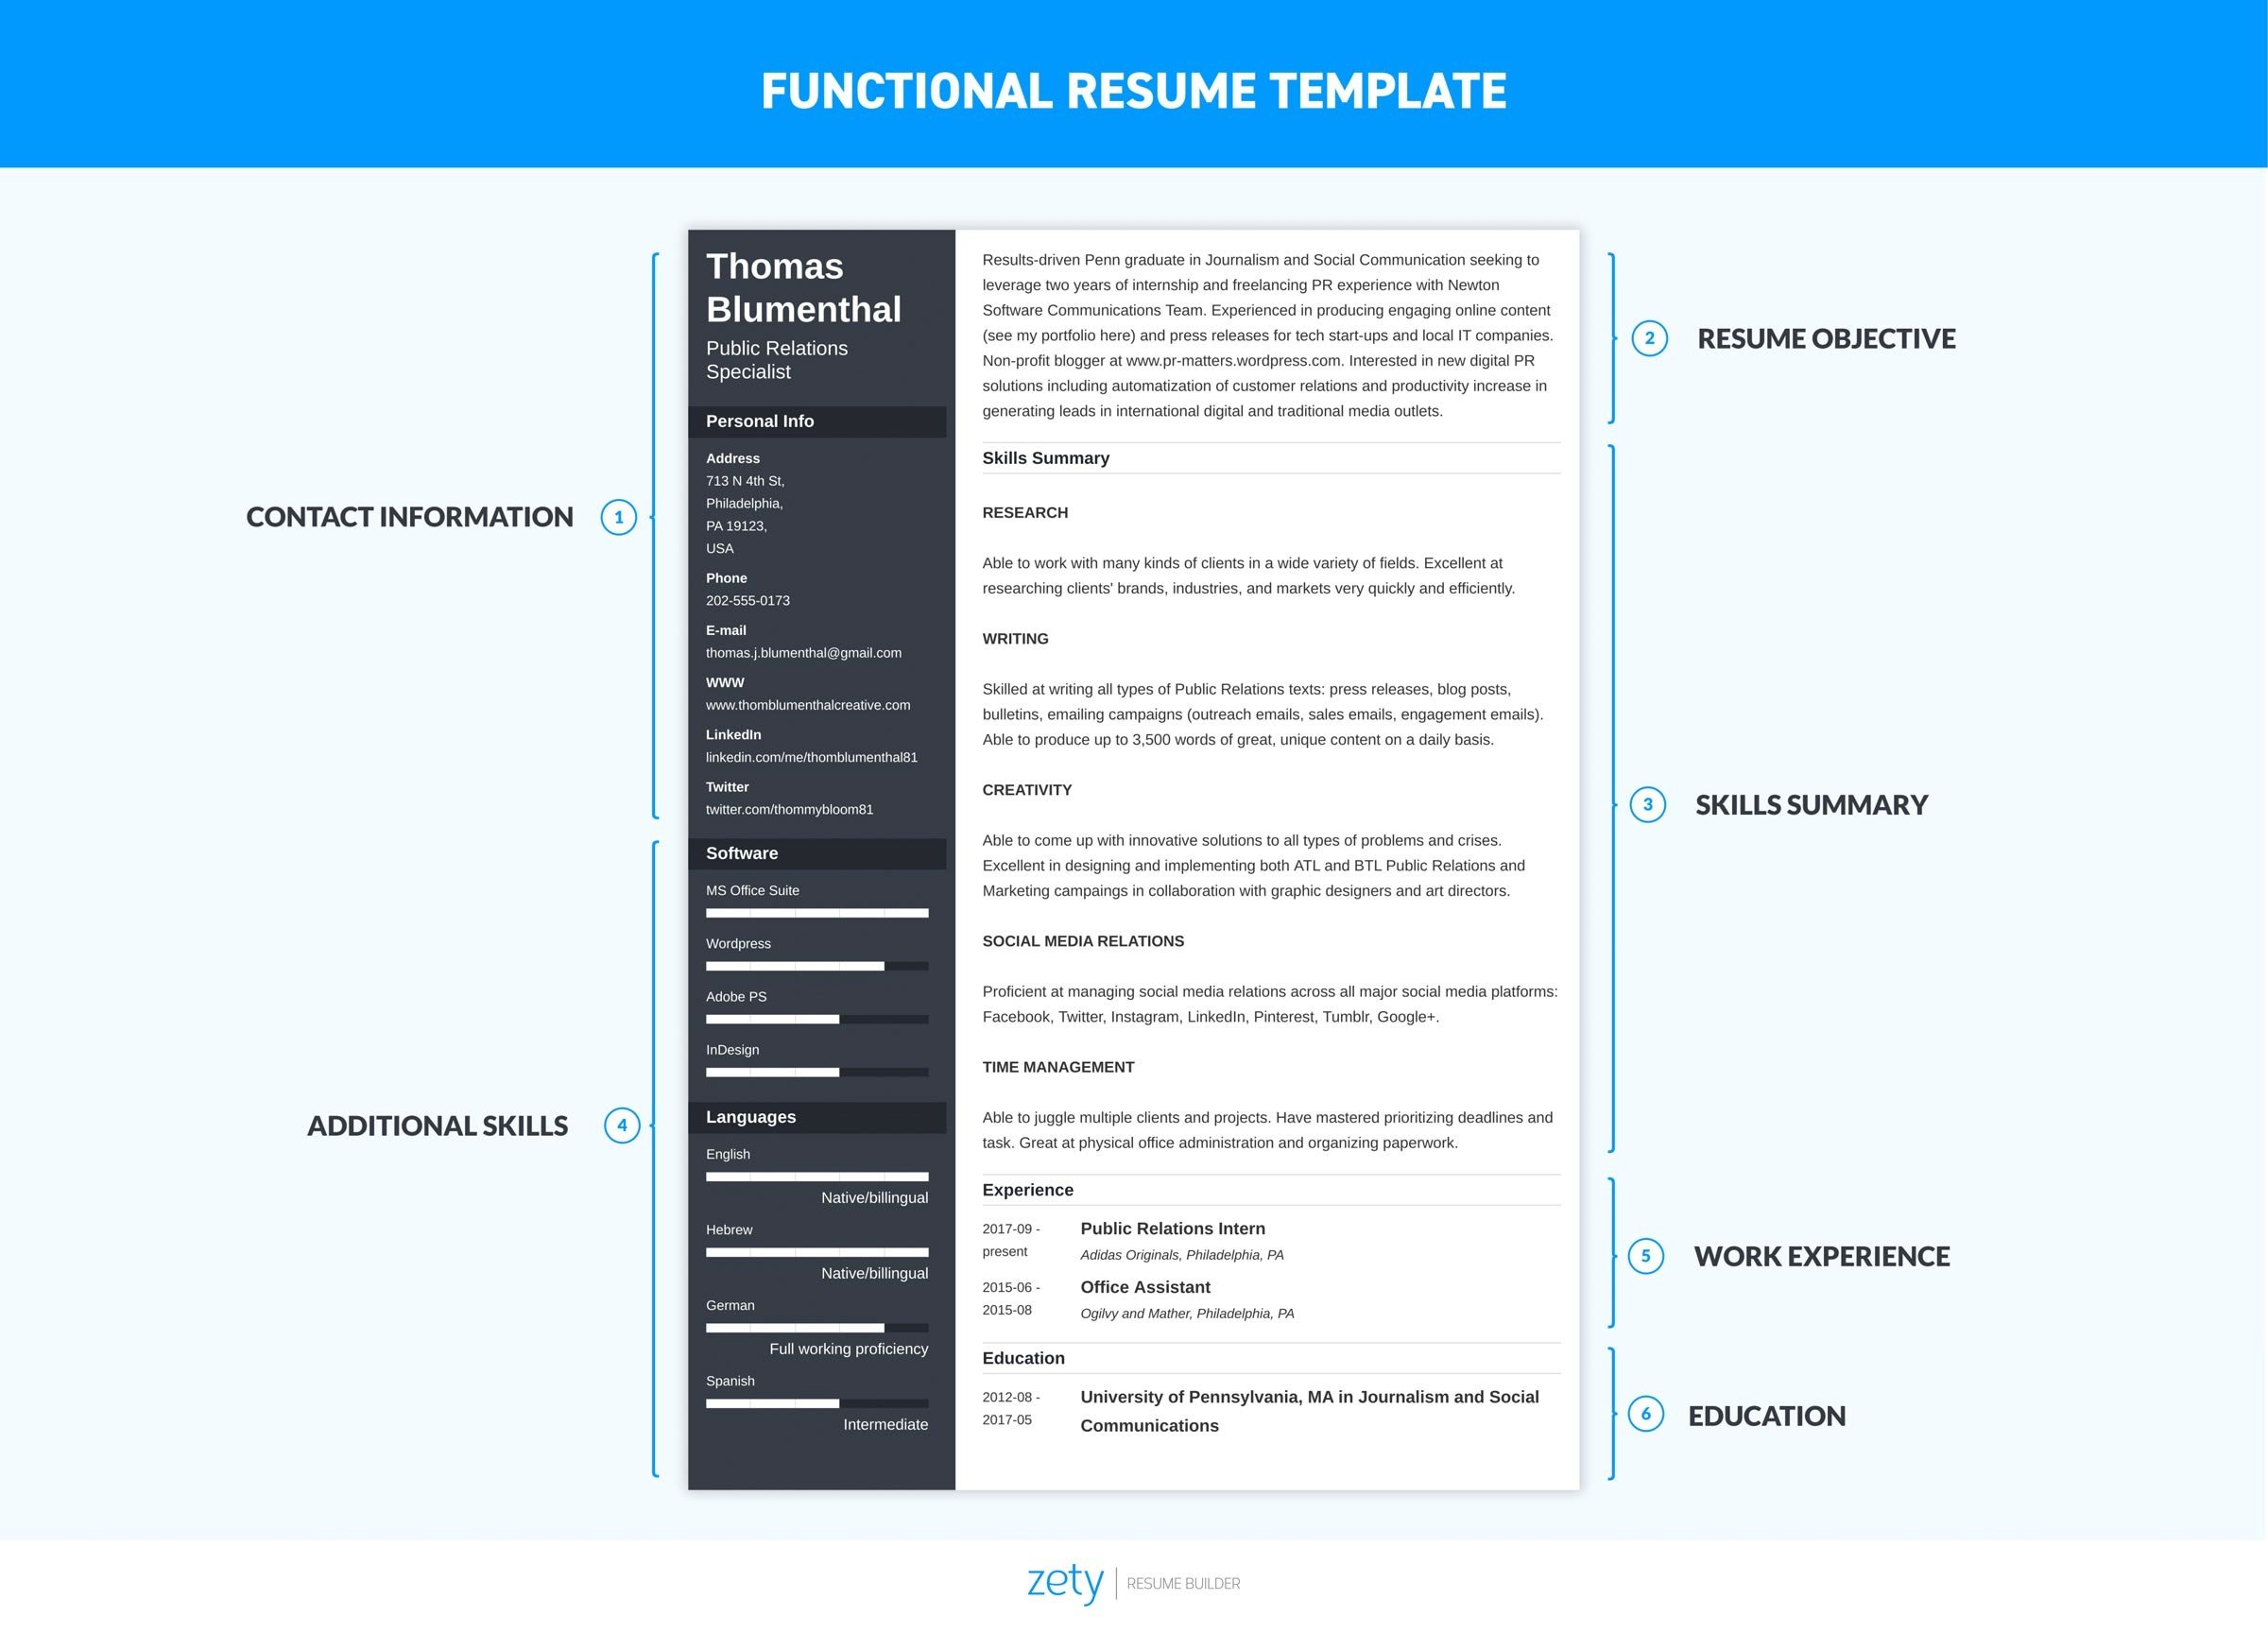 functional resume examples skills based templates example template canva server best Resume A Functional Resume Example